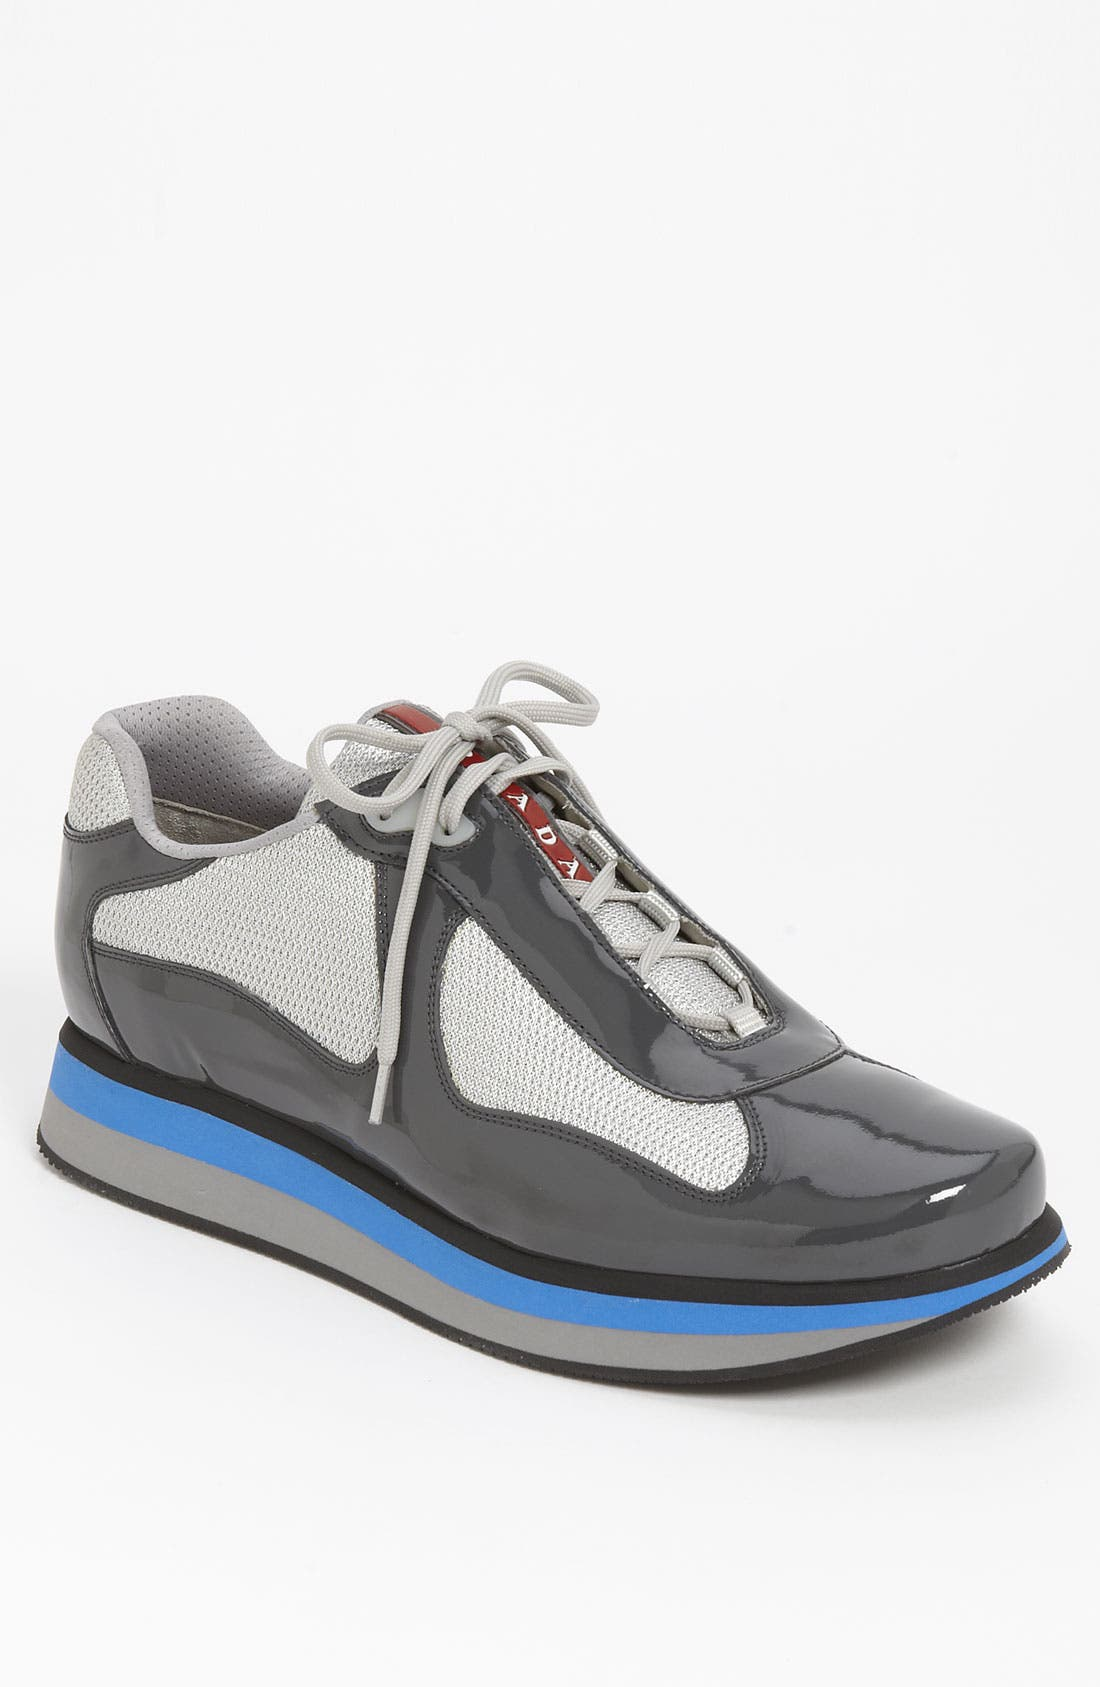 Main Image - Prada 'Americas Cup' Double Sole Sneaker